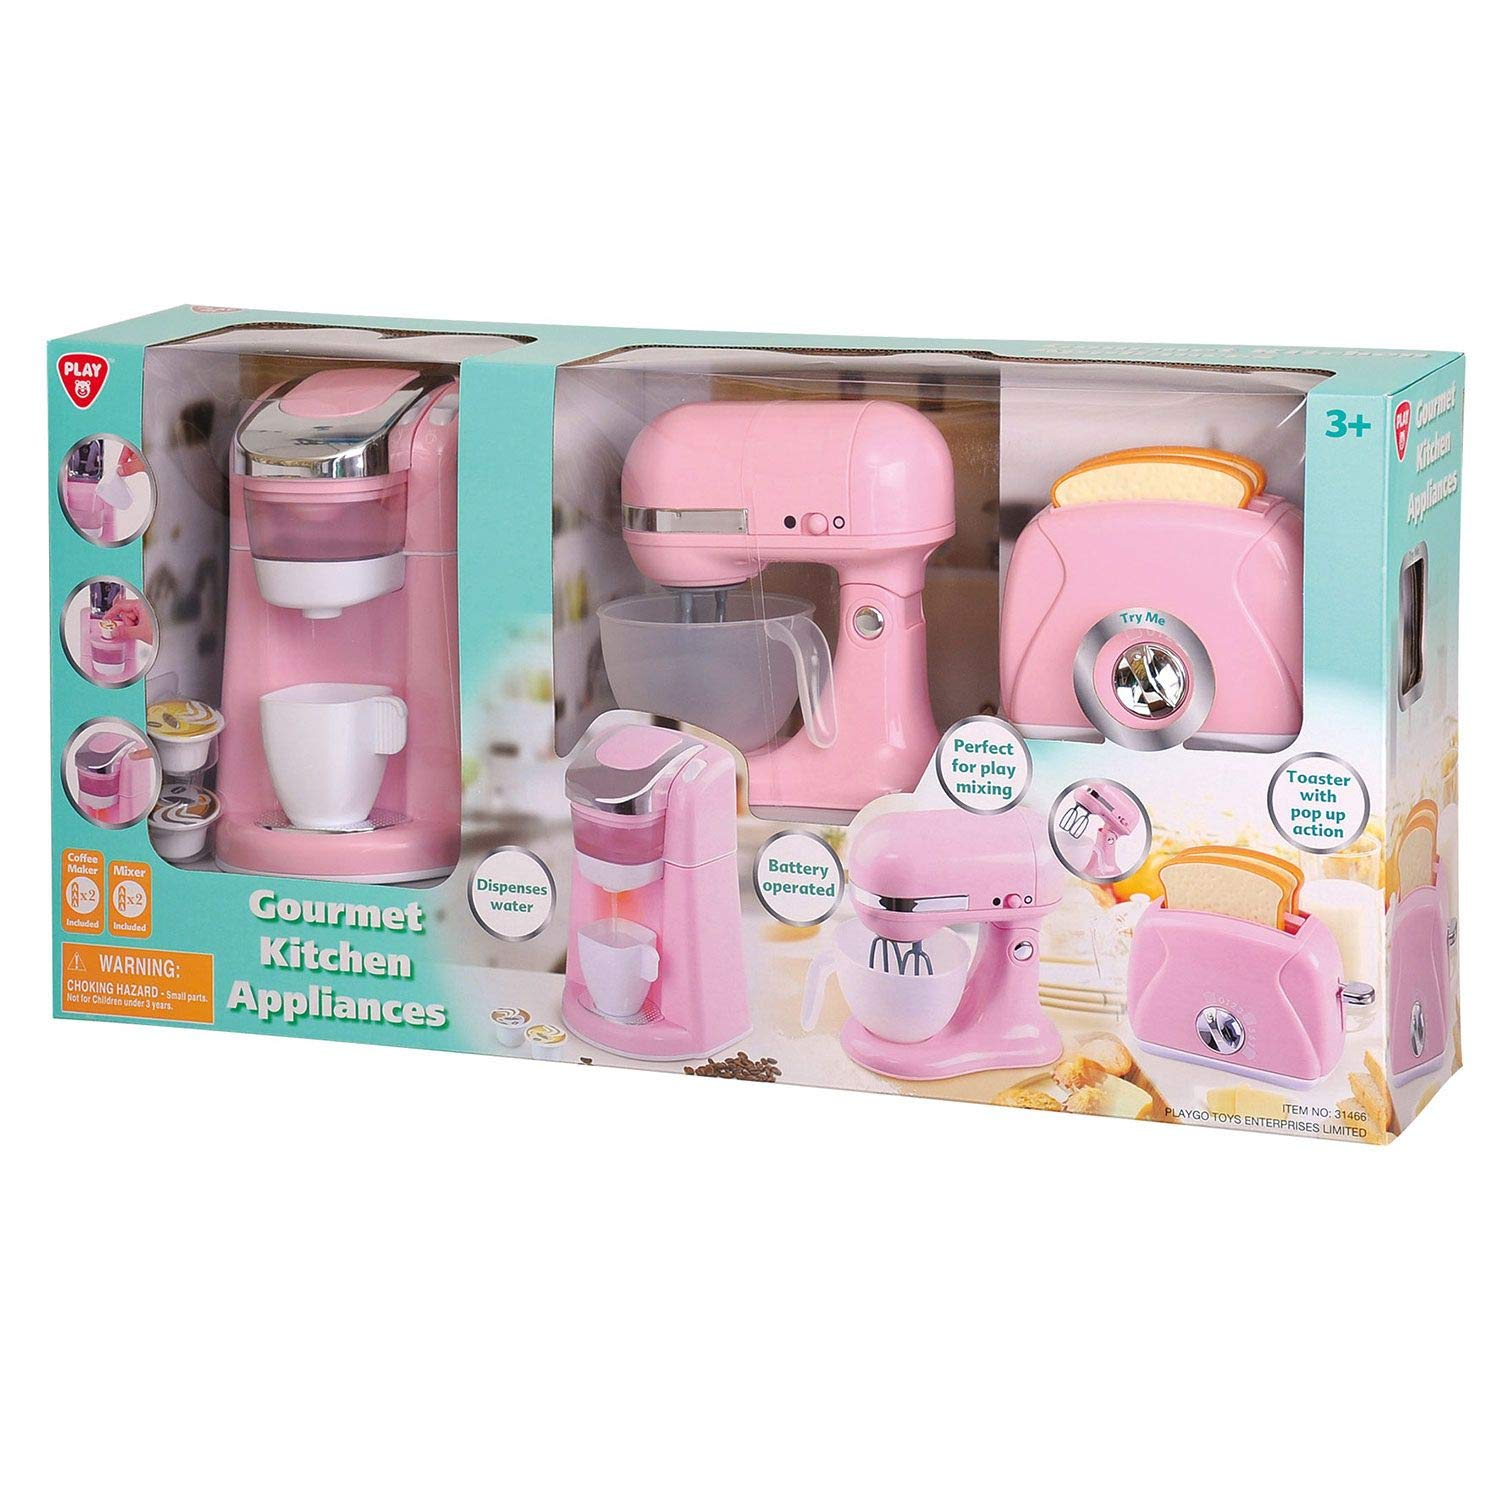 Gourmet Kitchen Appliances - Pink by PlayGo